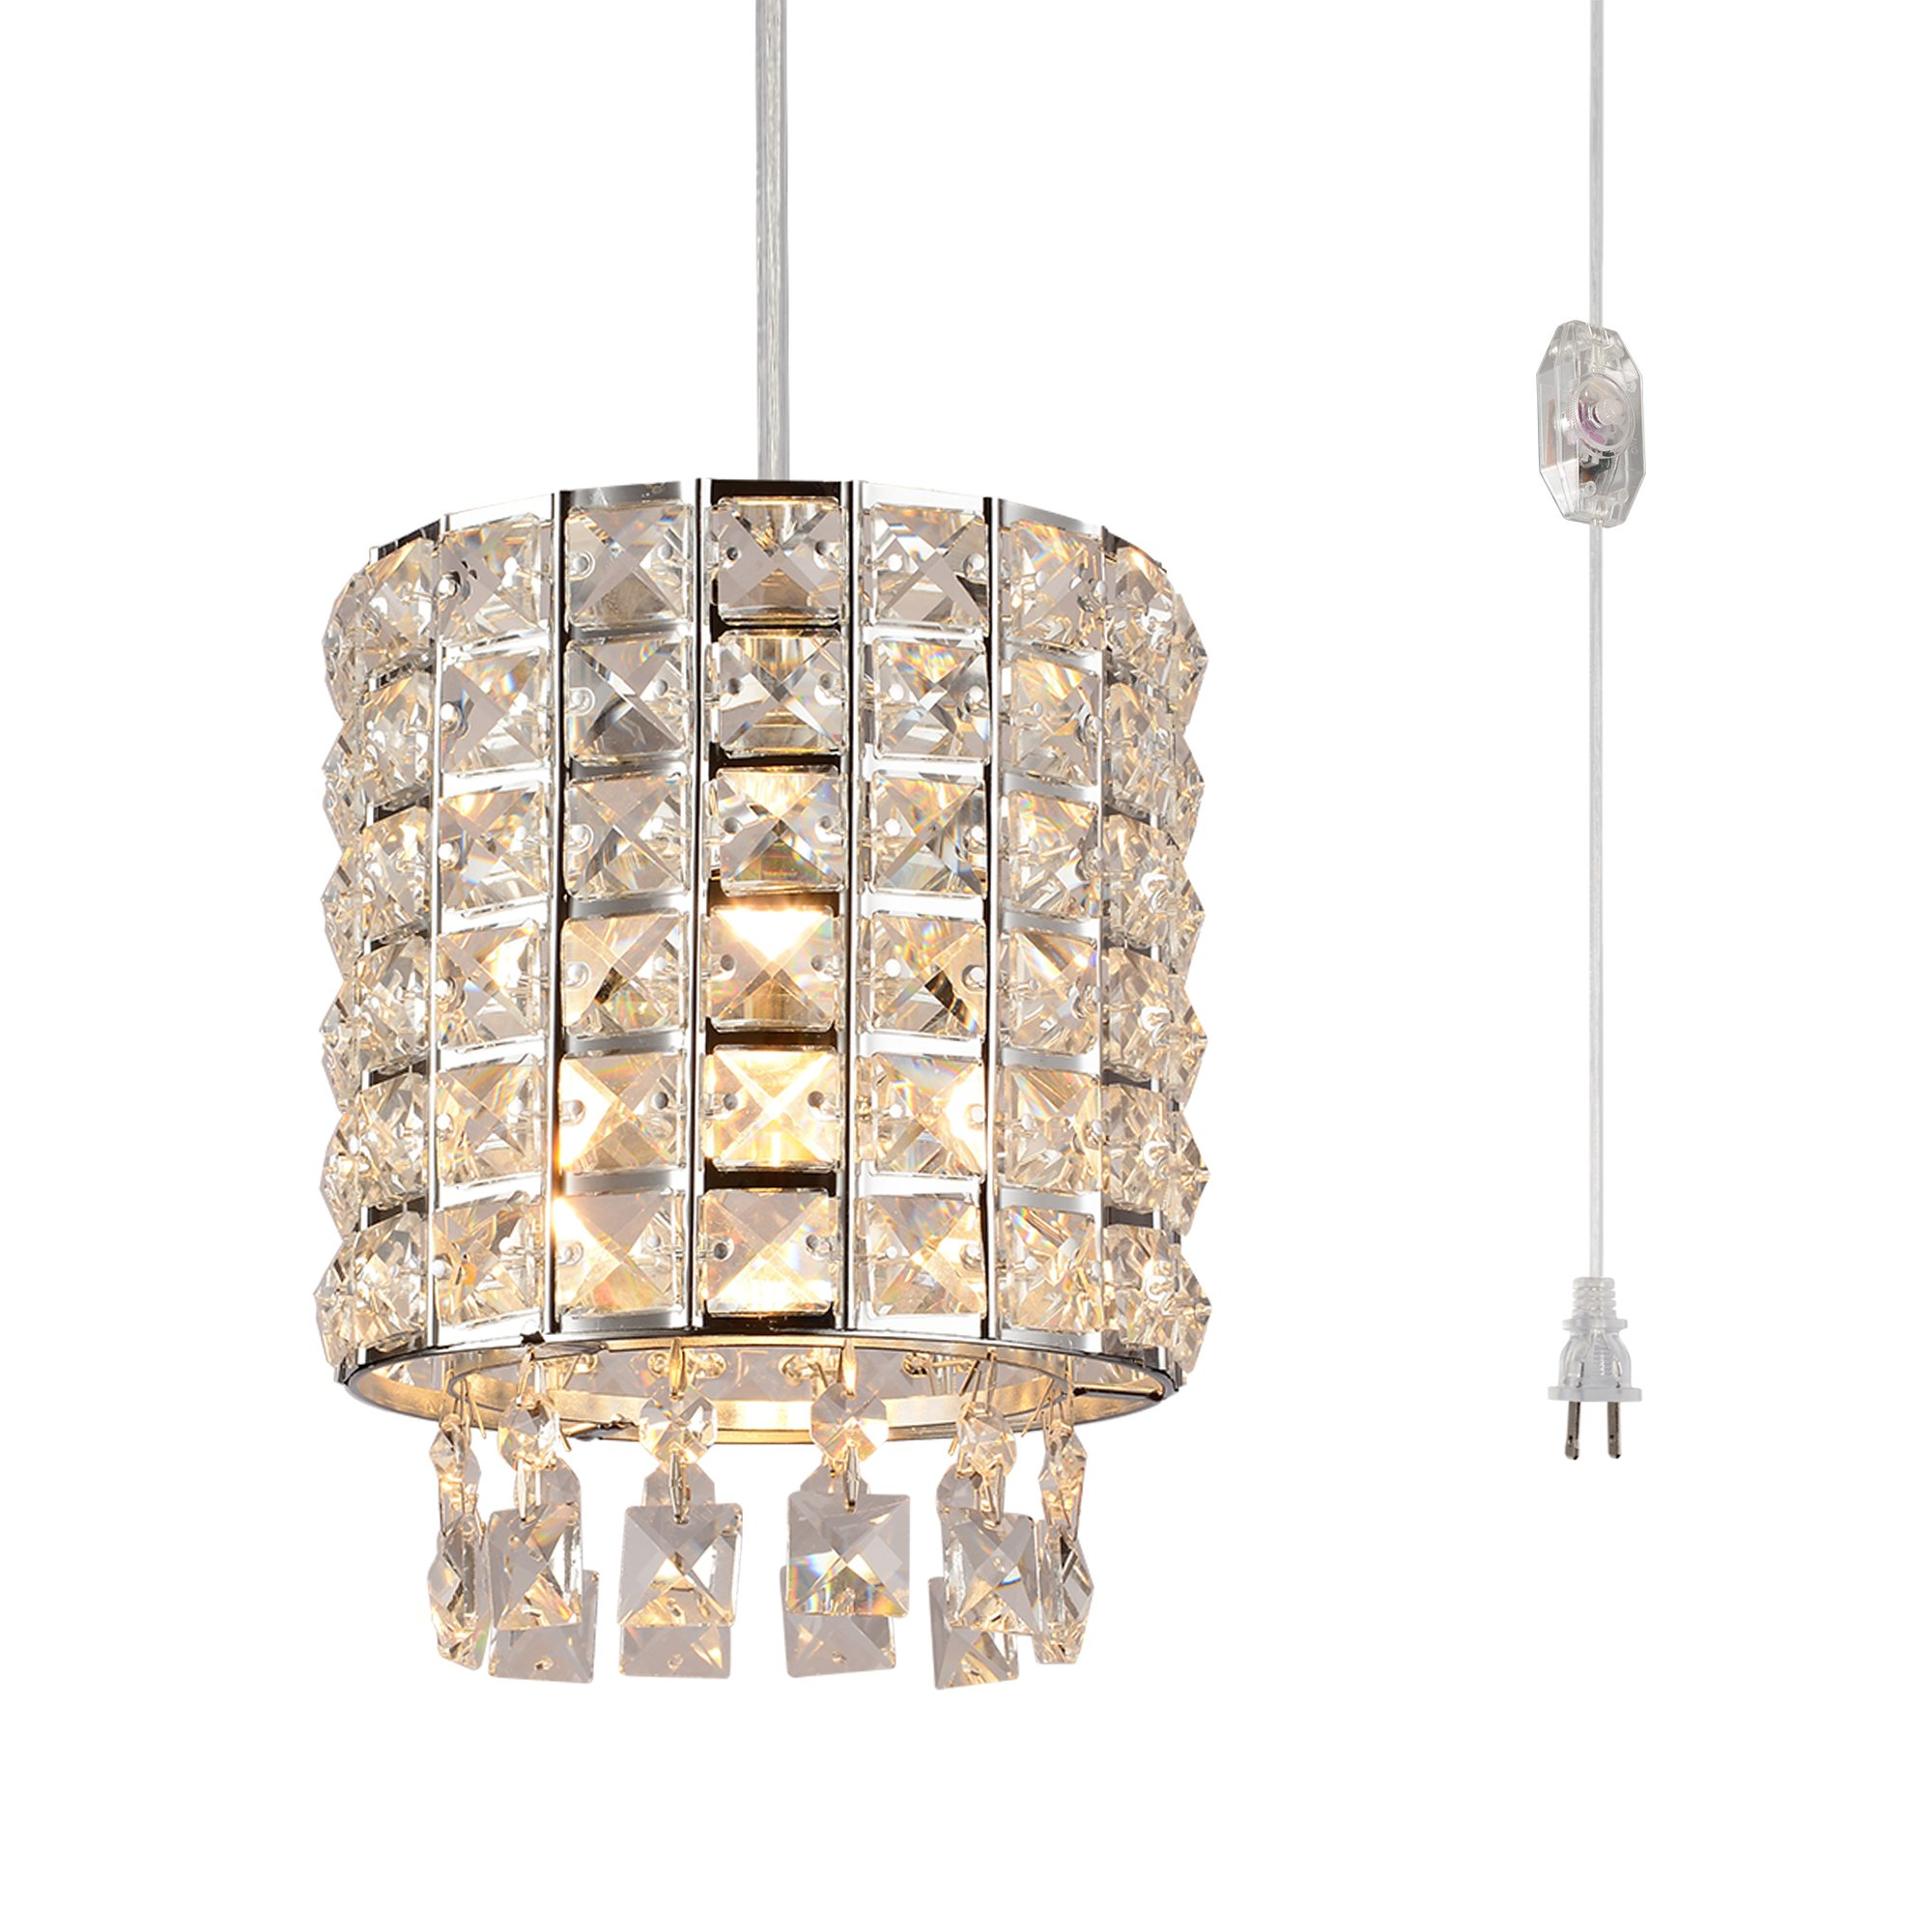 Plug in Modern Crystal Chandelier Swag Pendant Light with Clear 15' Cord and In-Line On/Off Dimmer Switch, Chrome Finish Cylinder Style